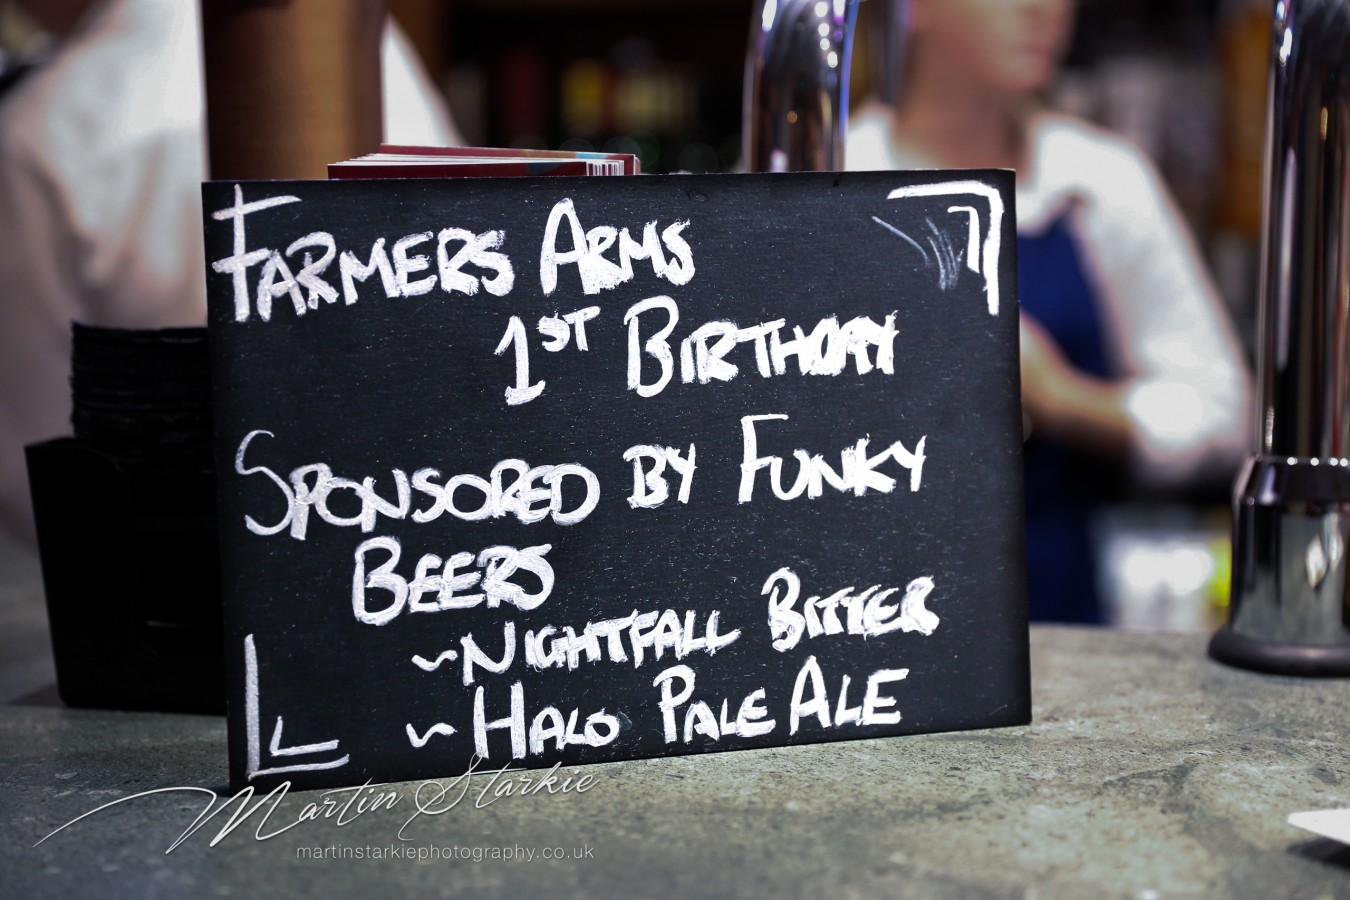 Martin Starkie Photography at the Farmers Arms Birthday Photo Shoot